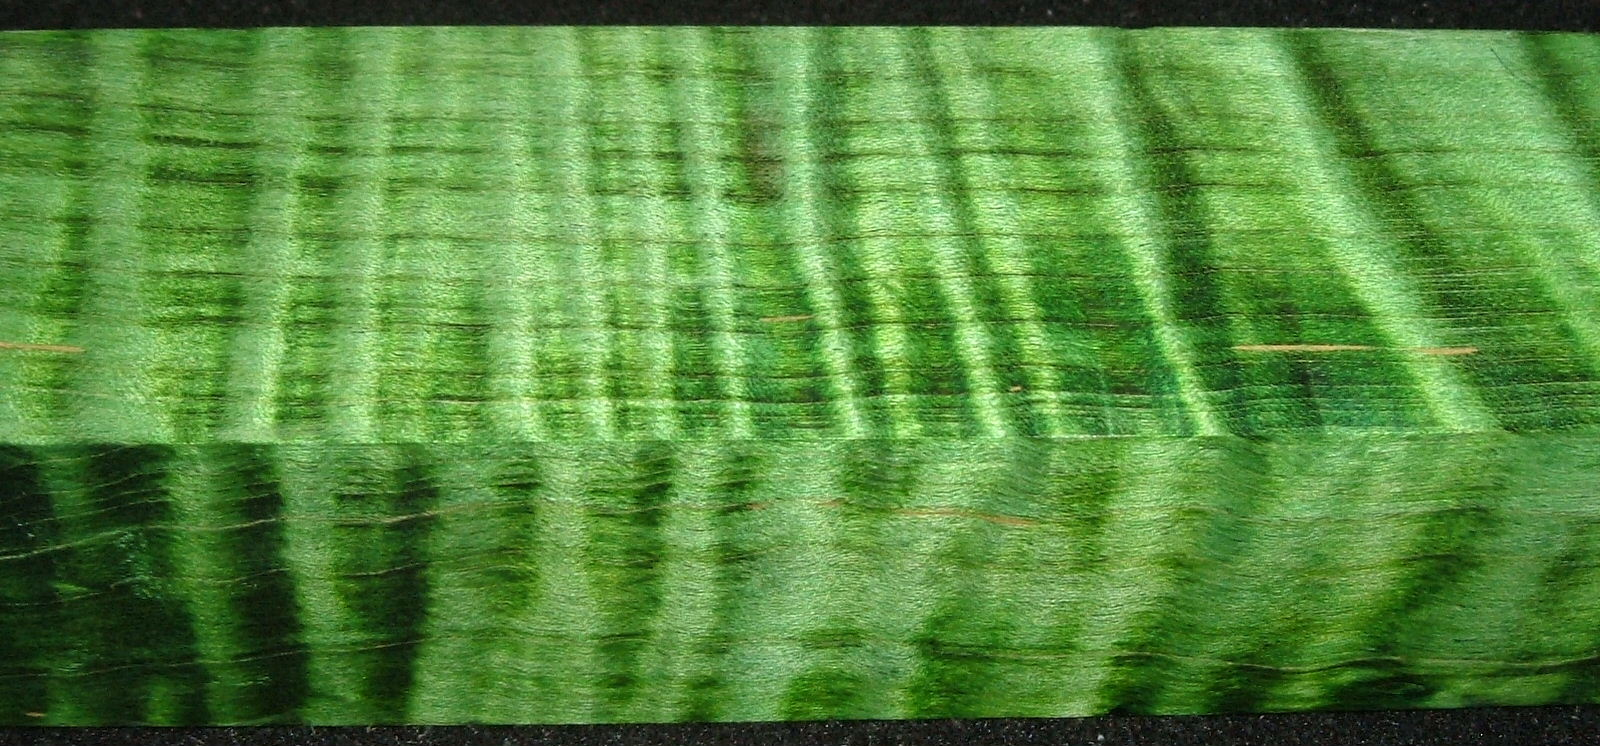 Z437, Curly Tiger Maple Dyed Stabilized, wood block scales/handle, Green, 1-1/8x1-13/16x5-3/4